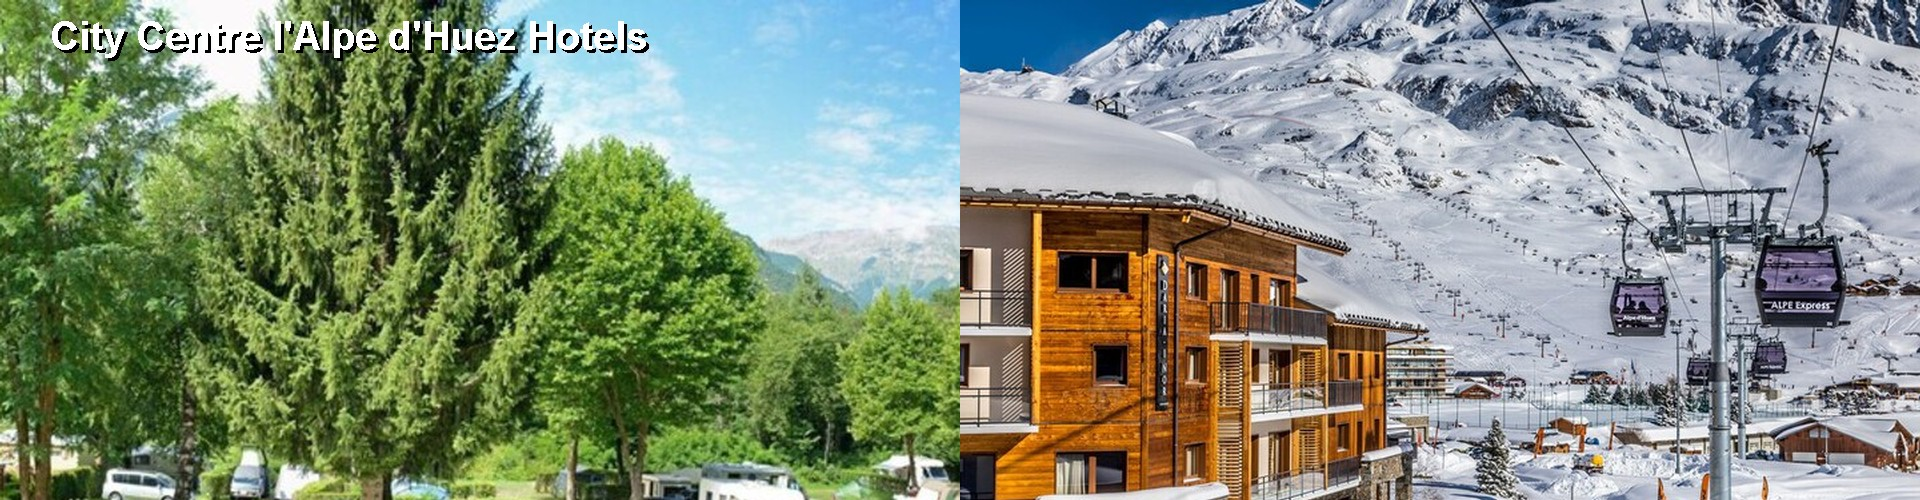 5 Best Hotels near City Centre l'Alpe d'Huez